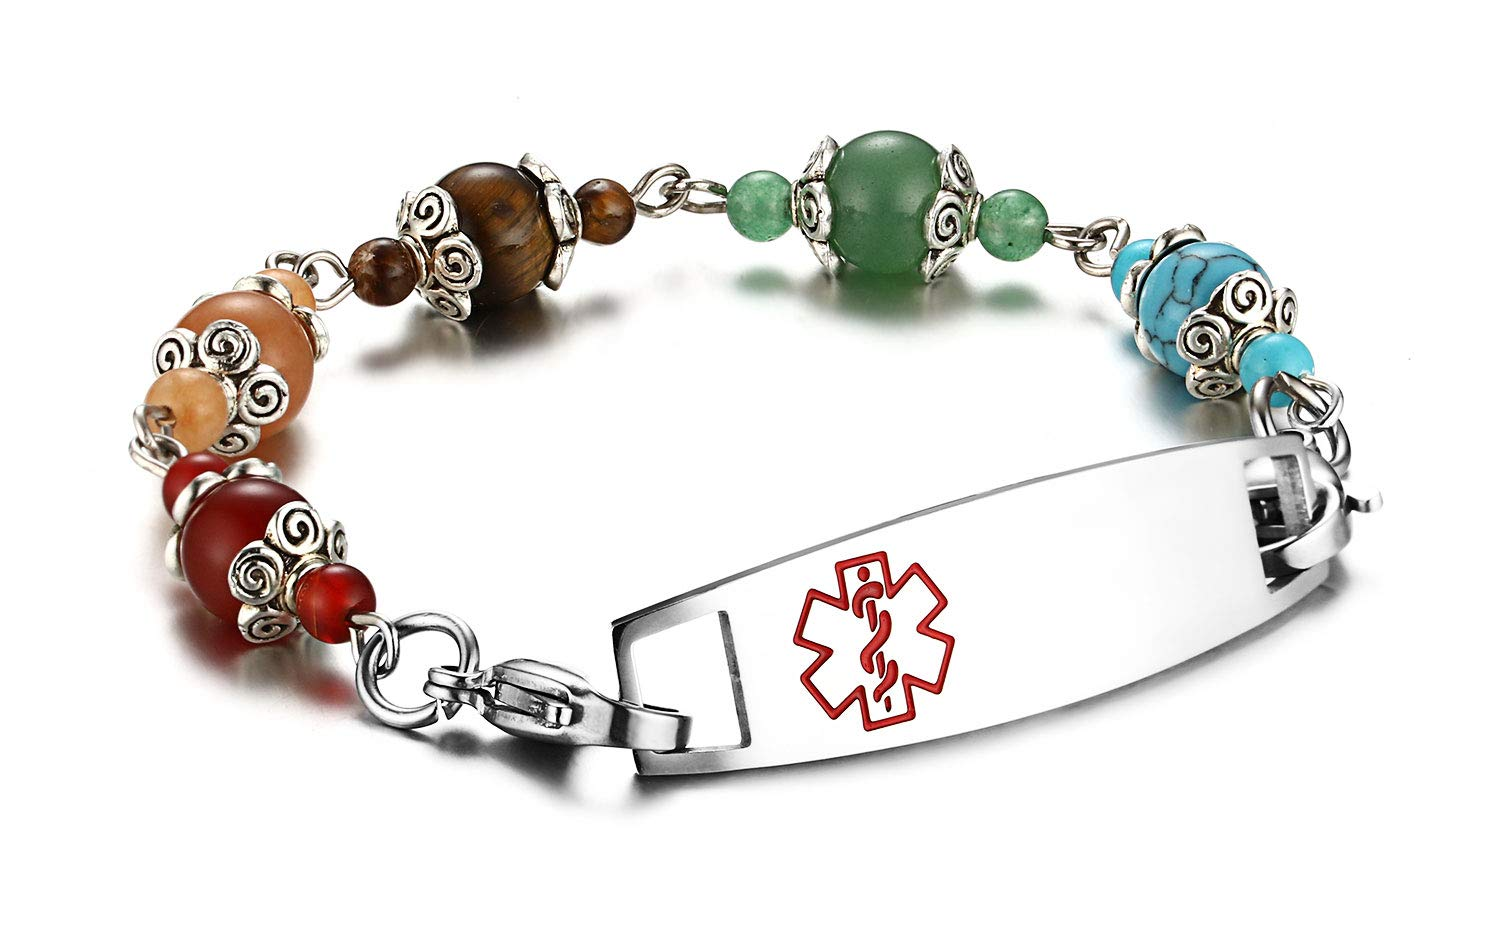 JF.JEWELRY Medical Alert ID Bracelet for Women with Natural Stone Beads Custom Engraving by JF.JEWELRY